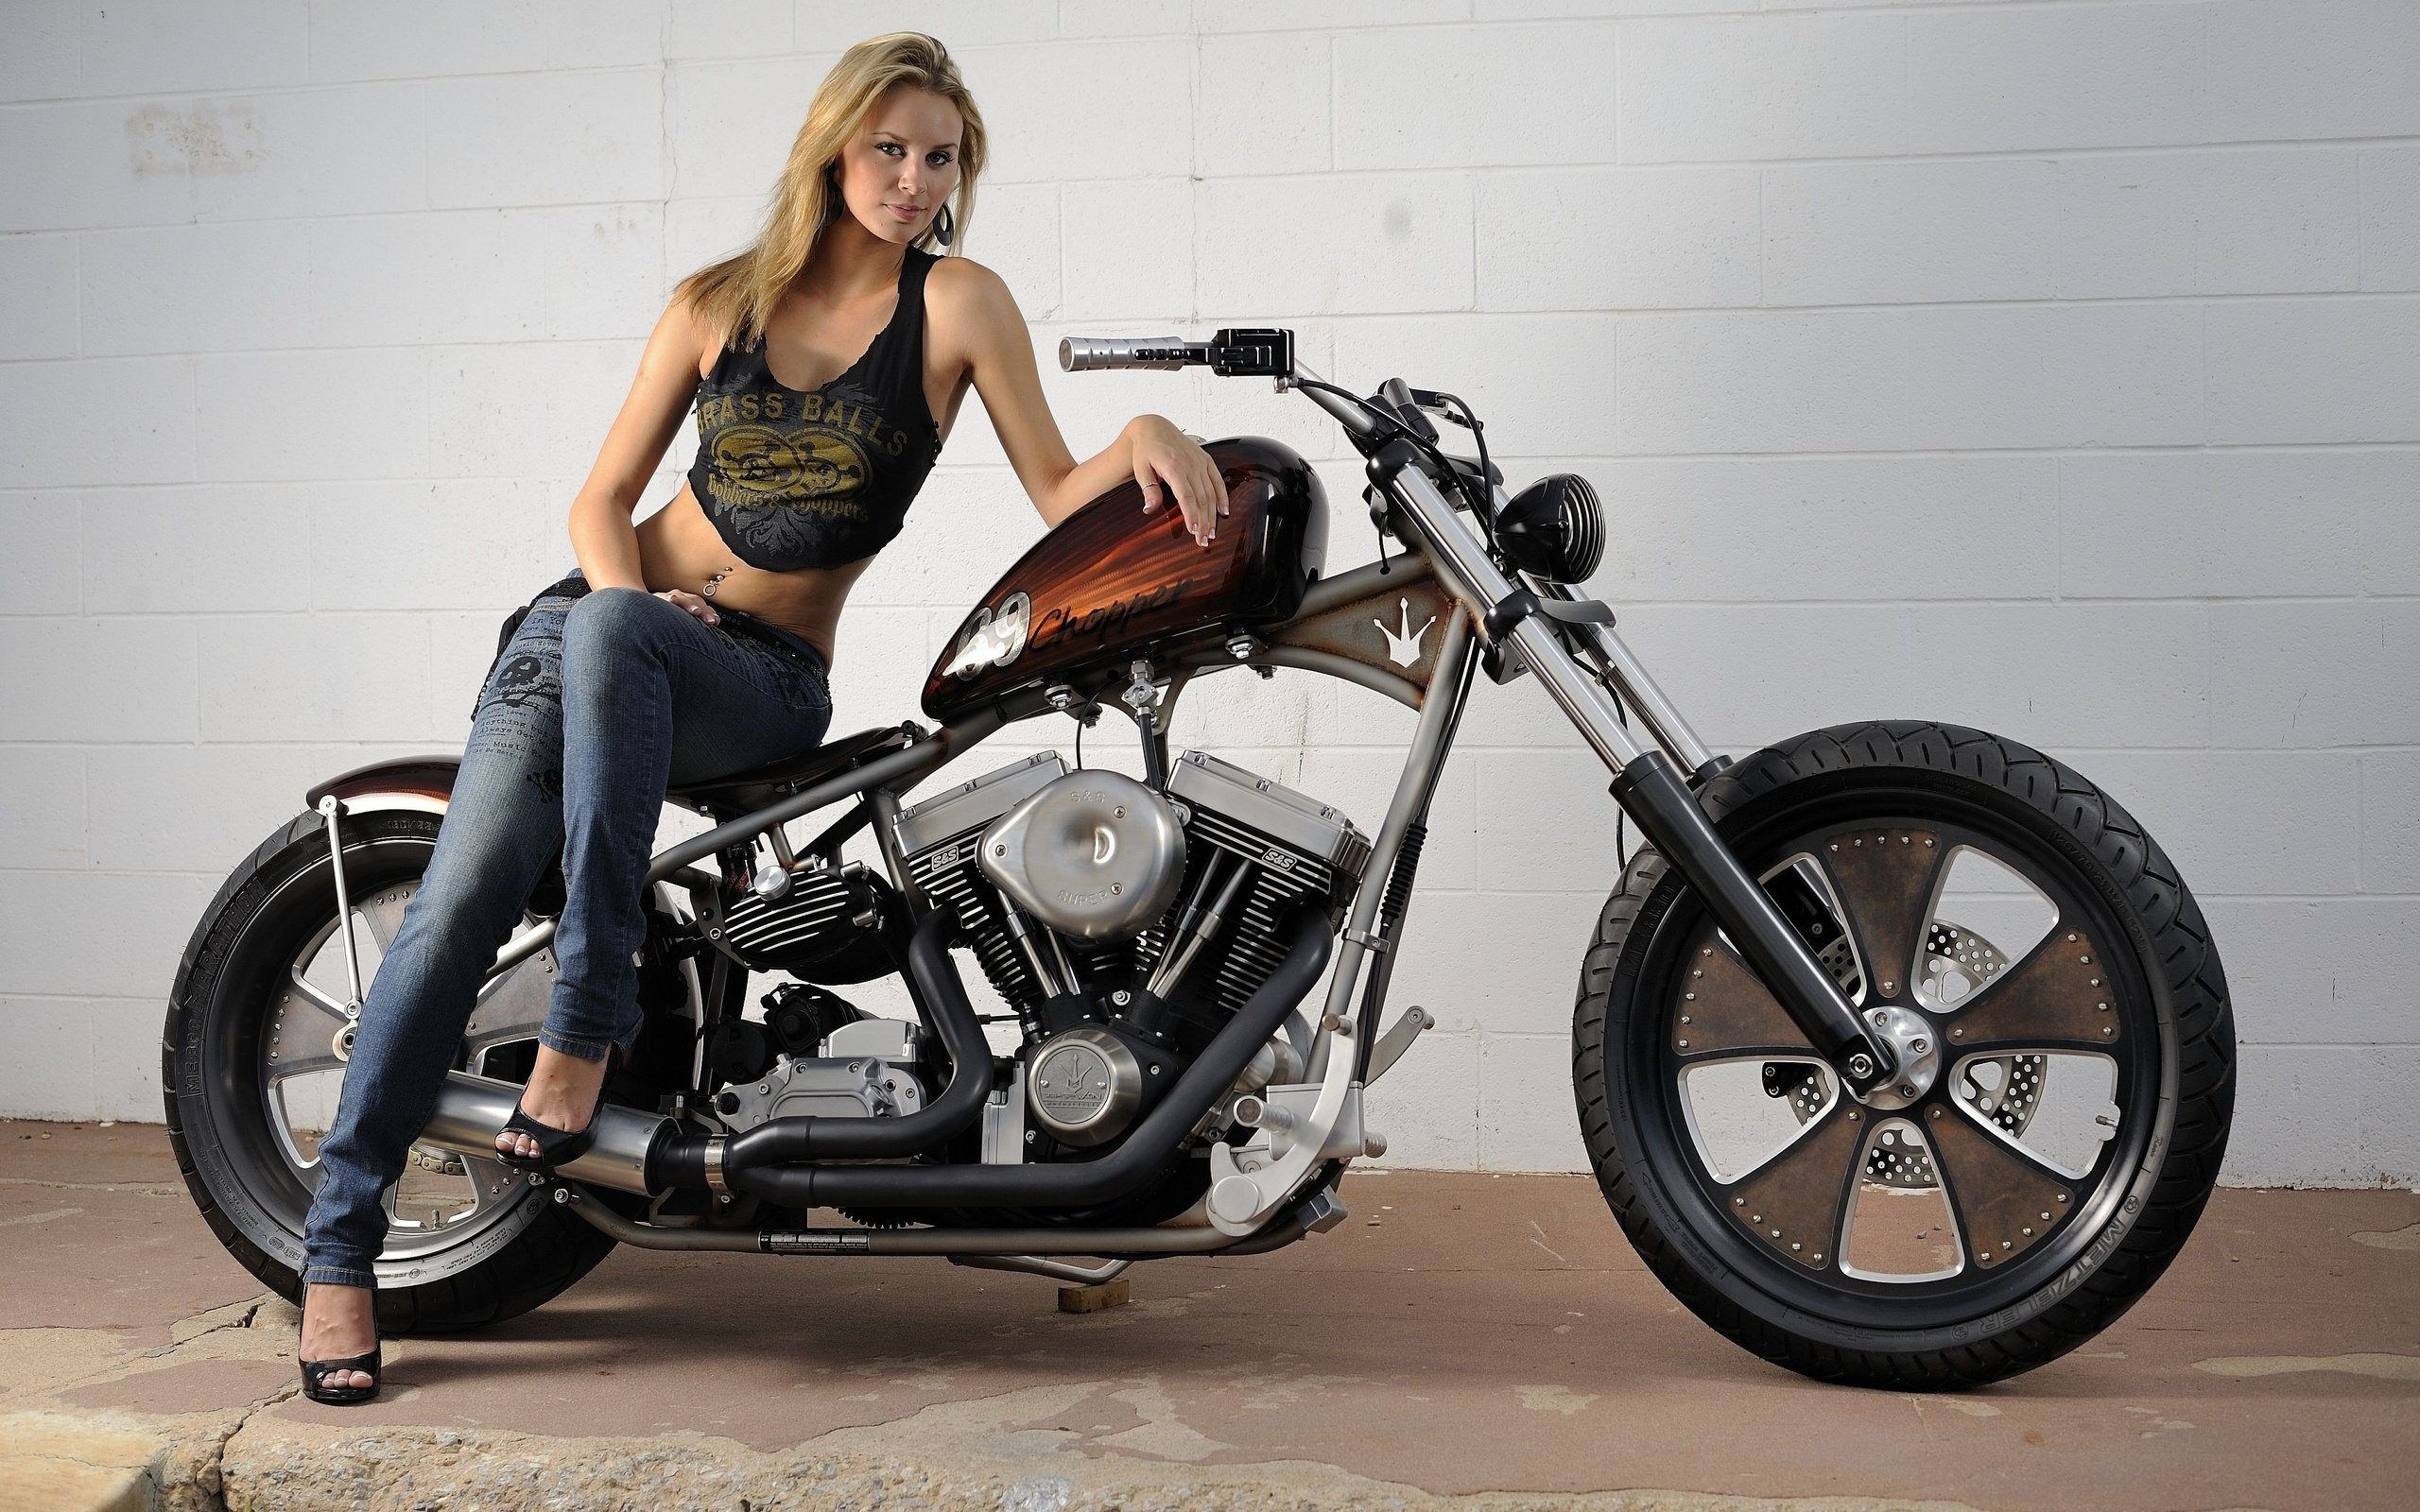 High resolution Girls and Bike (Motorcycles) hd 2560x1600 background ID:67065 for PC